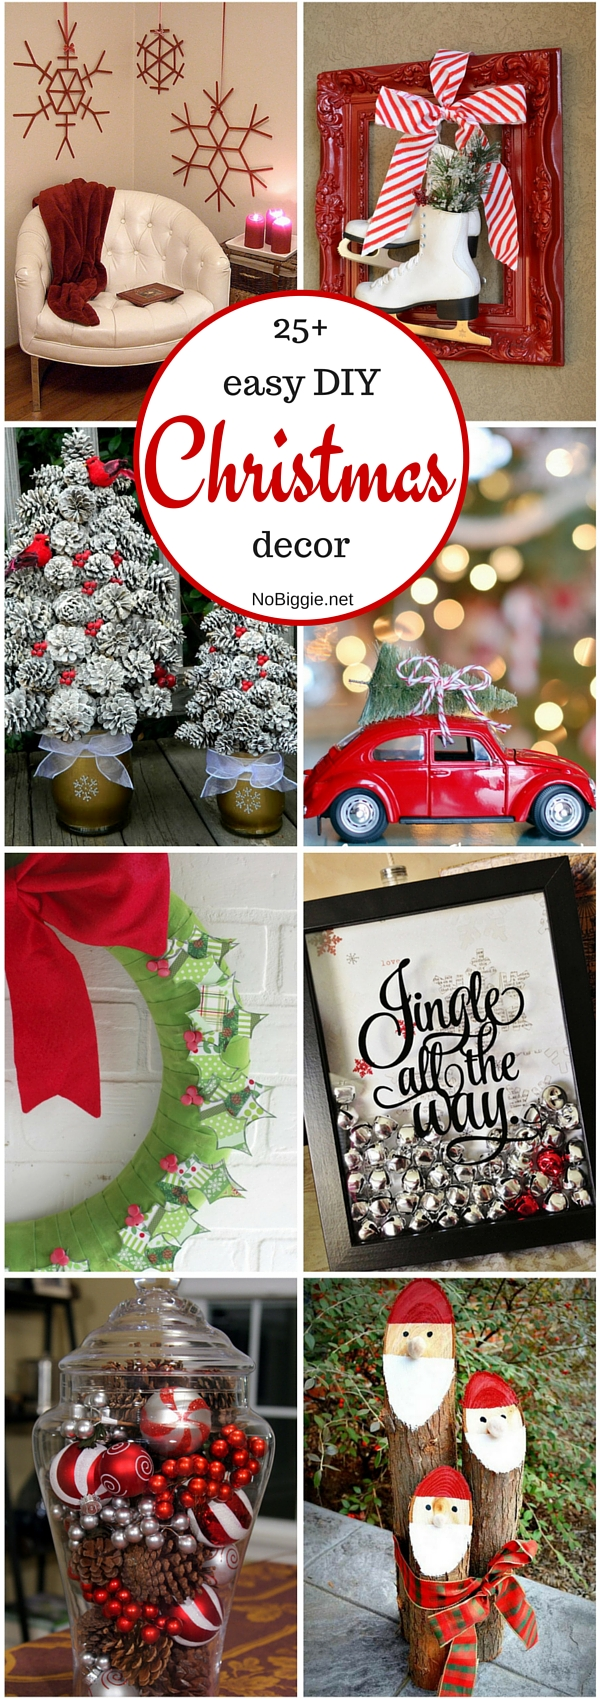 25+ easy DIY Christmas decor | NoBiggie.net